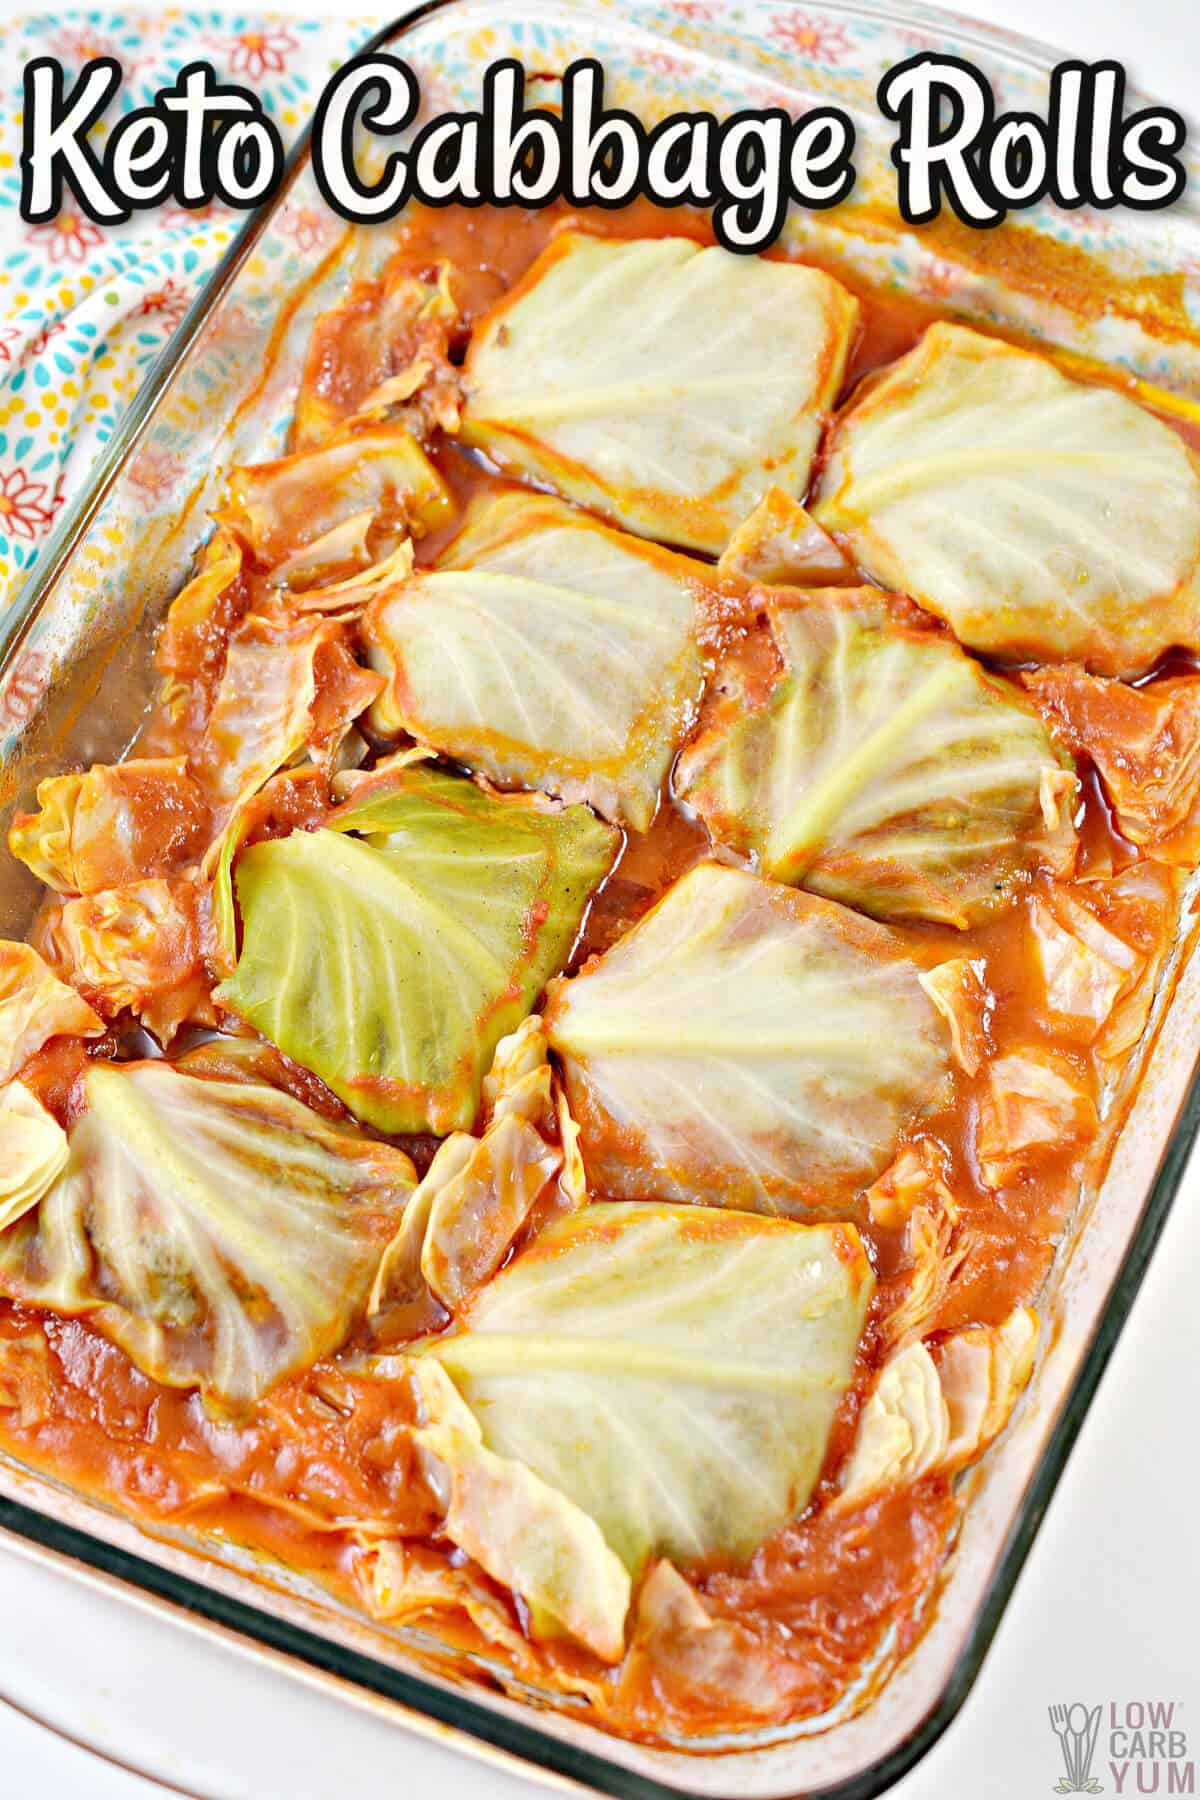 keto cabbage rolls cover image